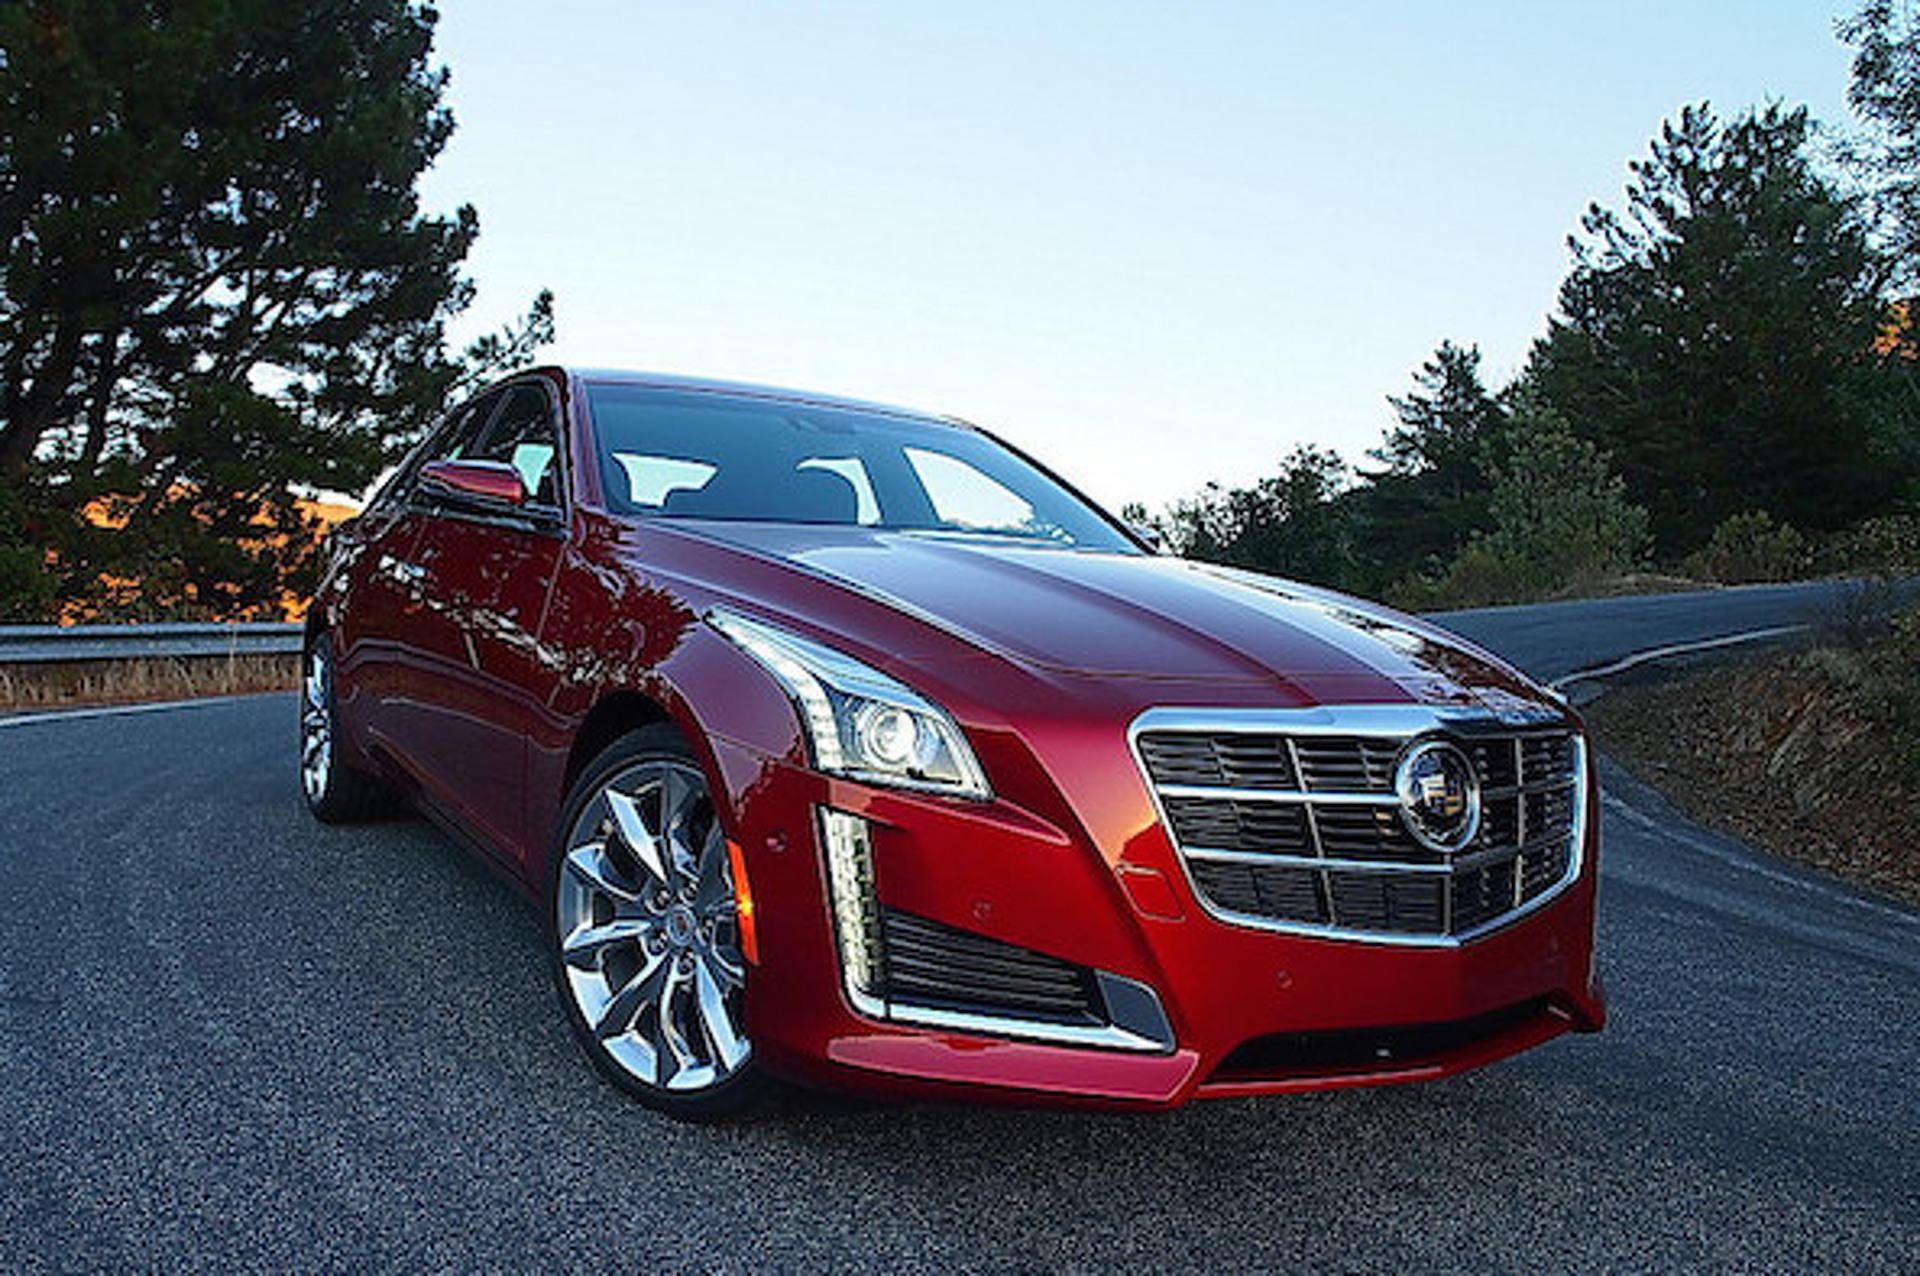 Home in a New Cadillac CTS from eBay Motors